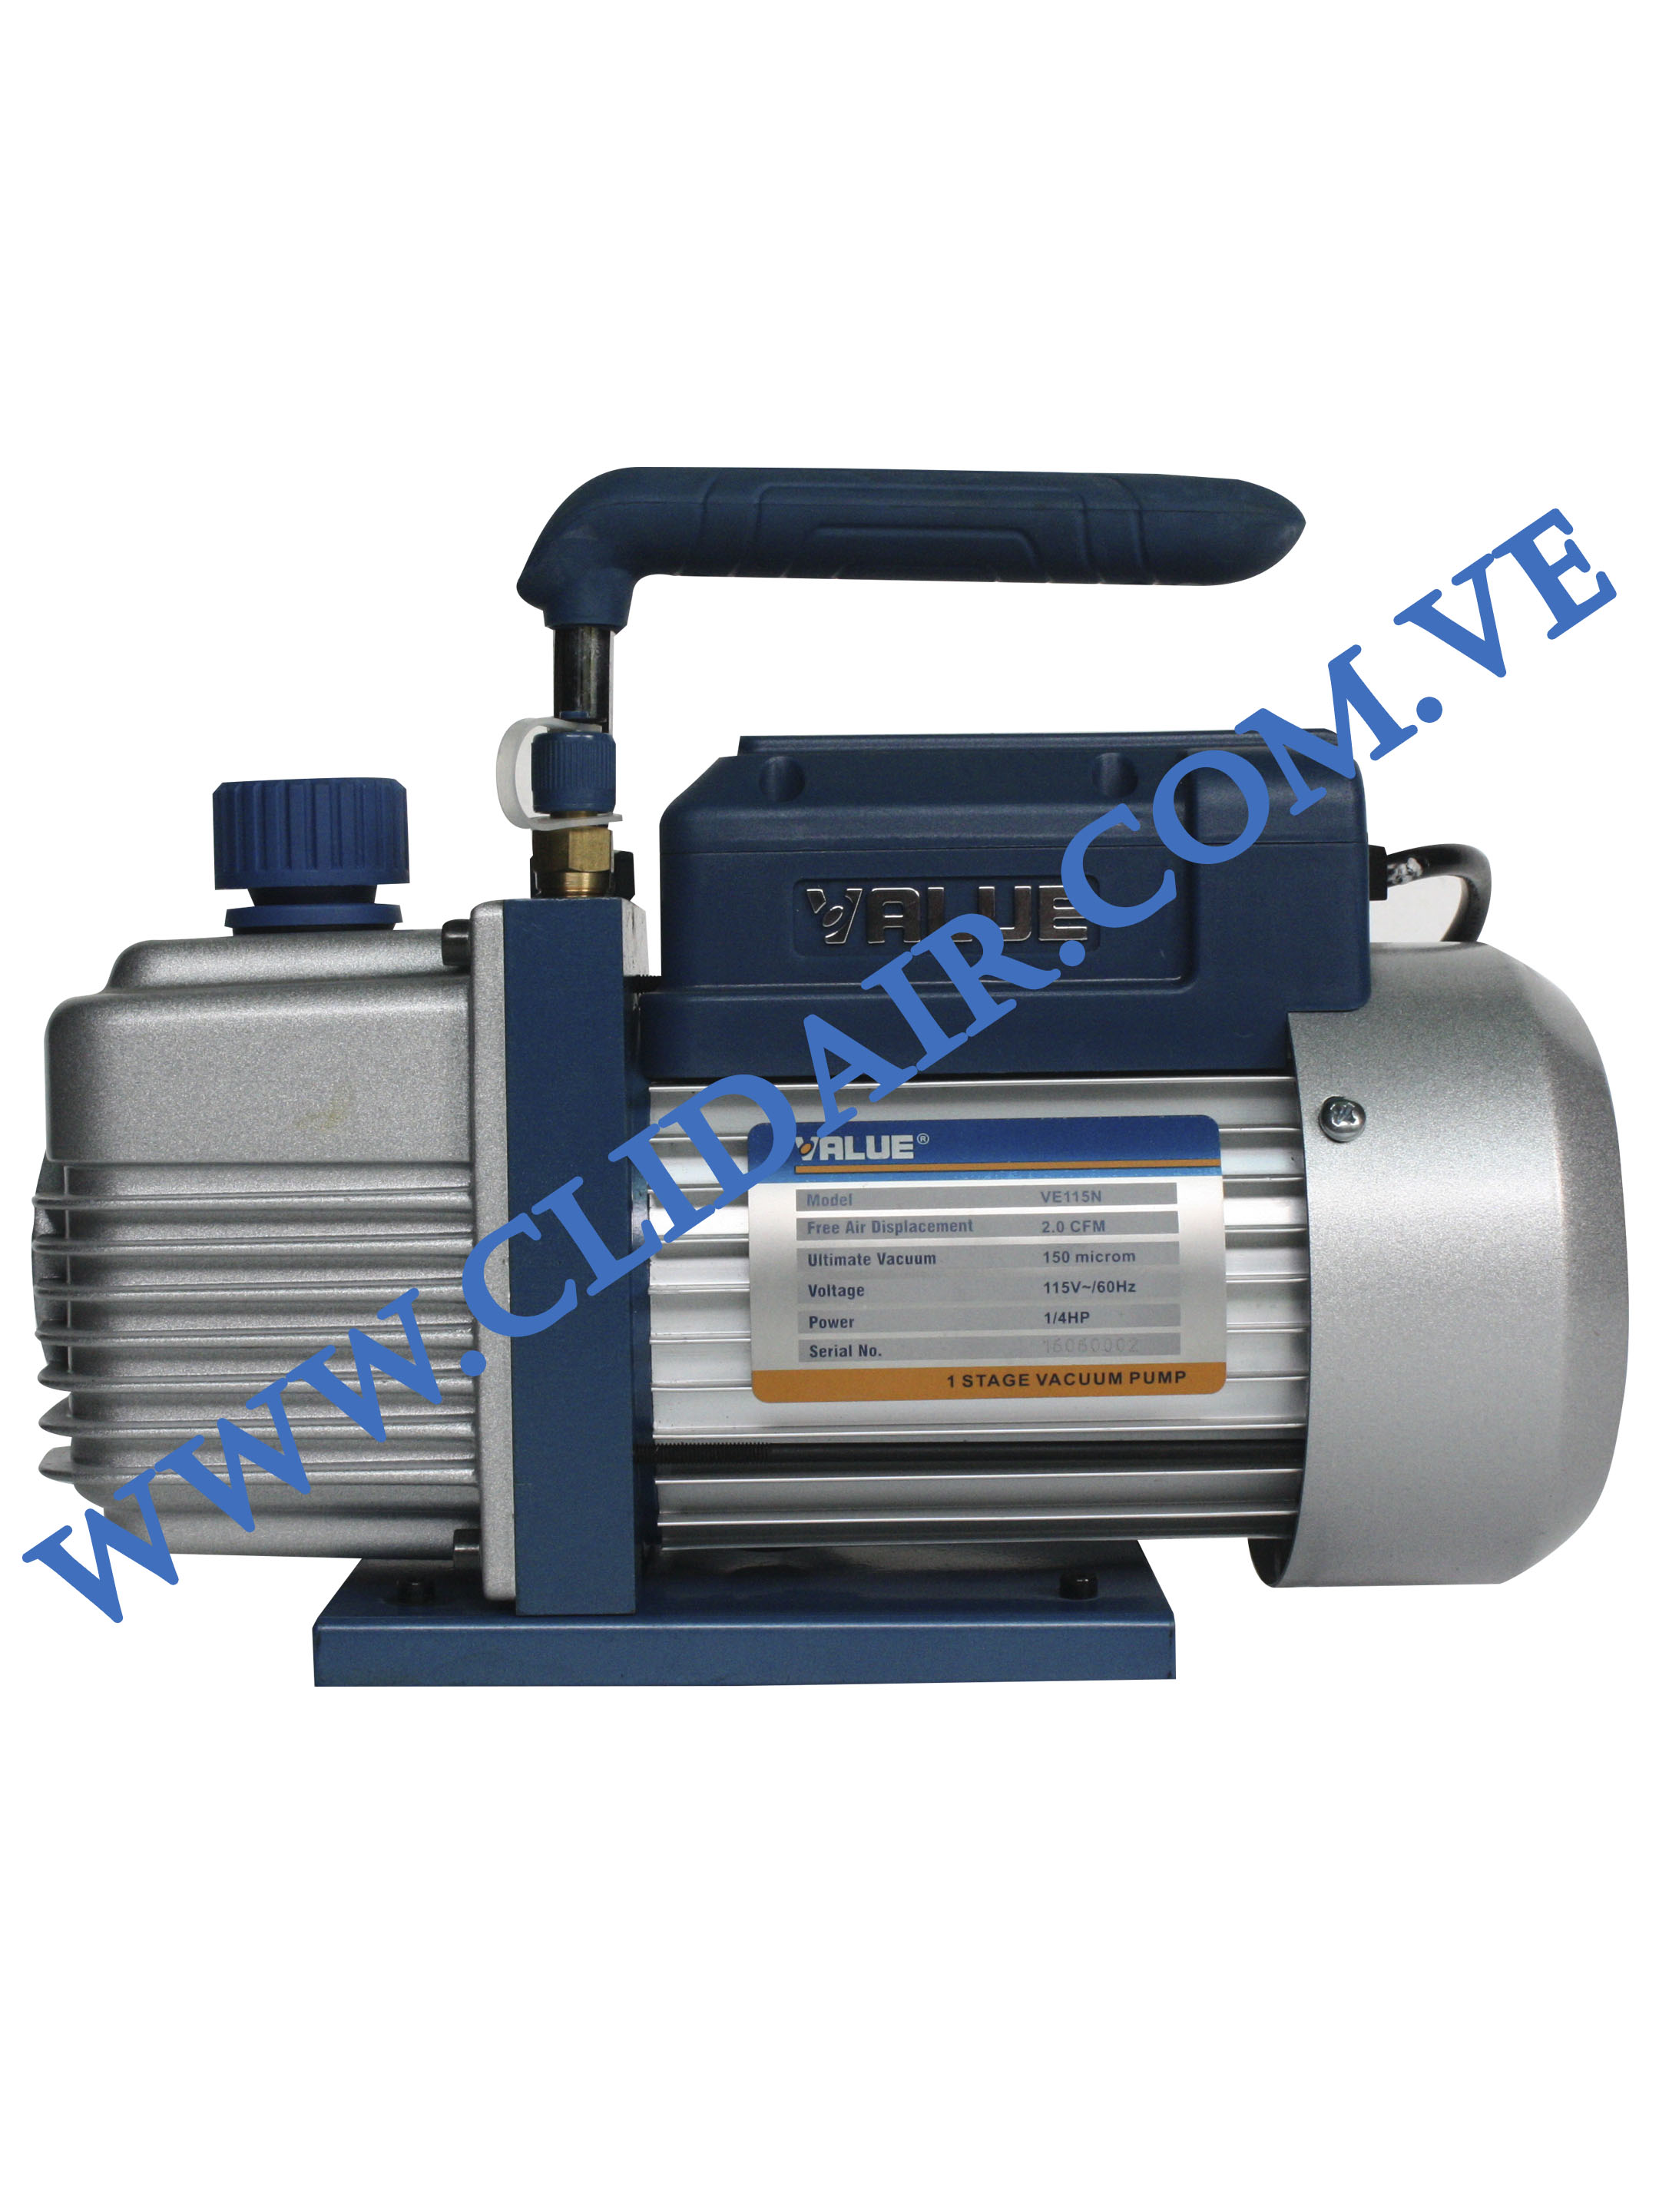 BOMBA DE VACIO 1/4HP 2CFM-150MICRON 110V/60HZ  VE115N   VALUE